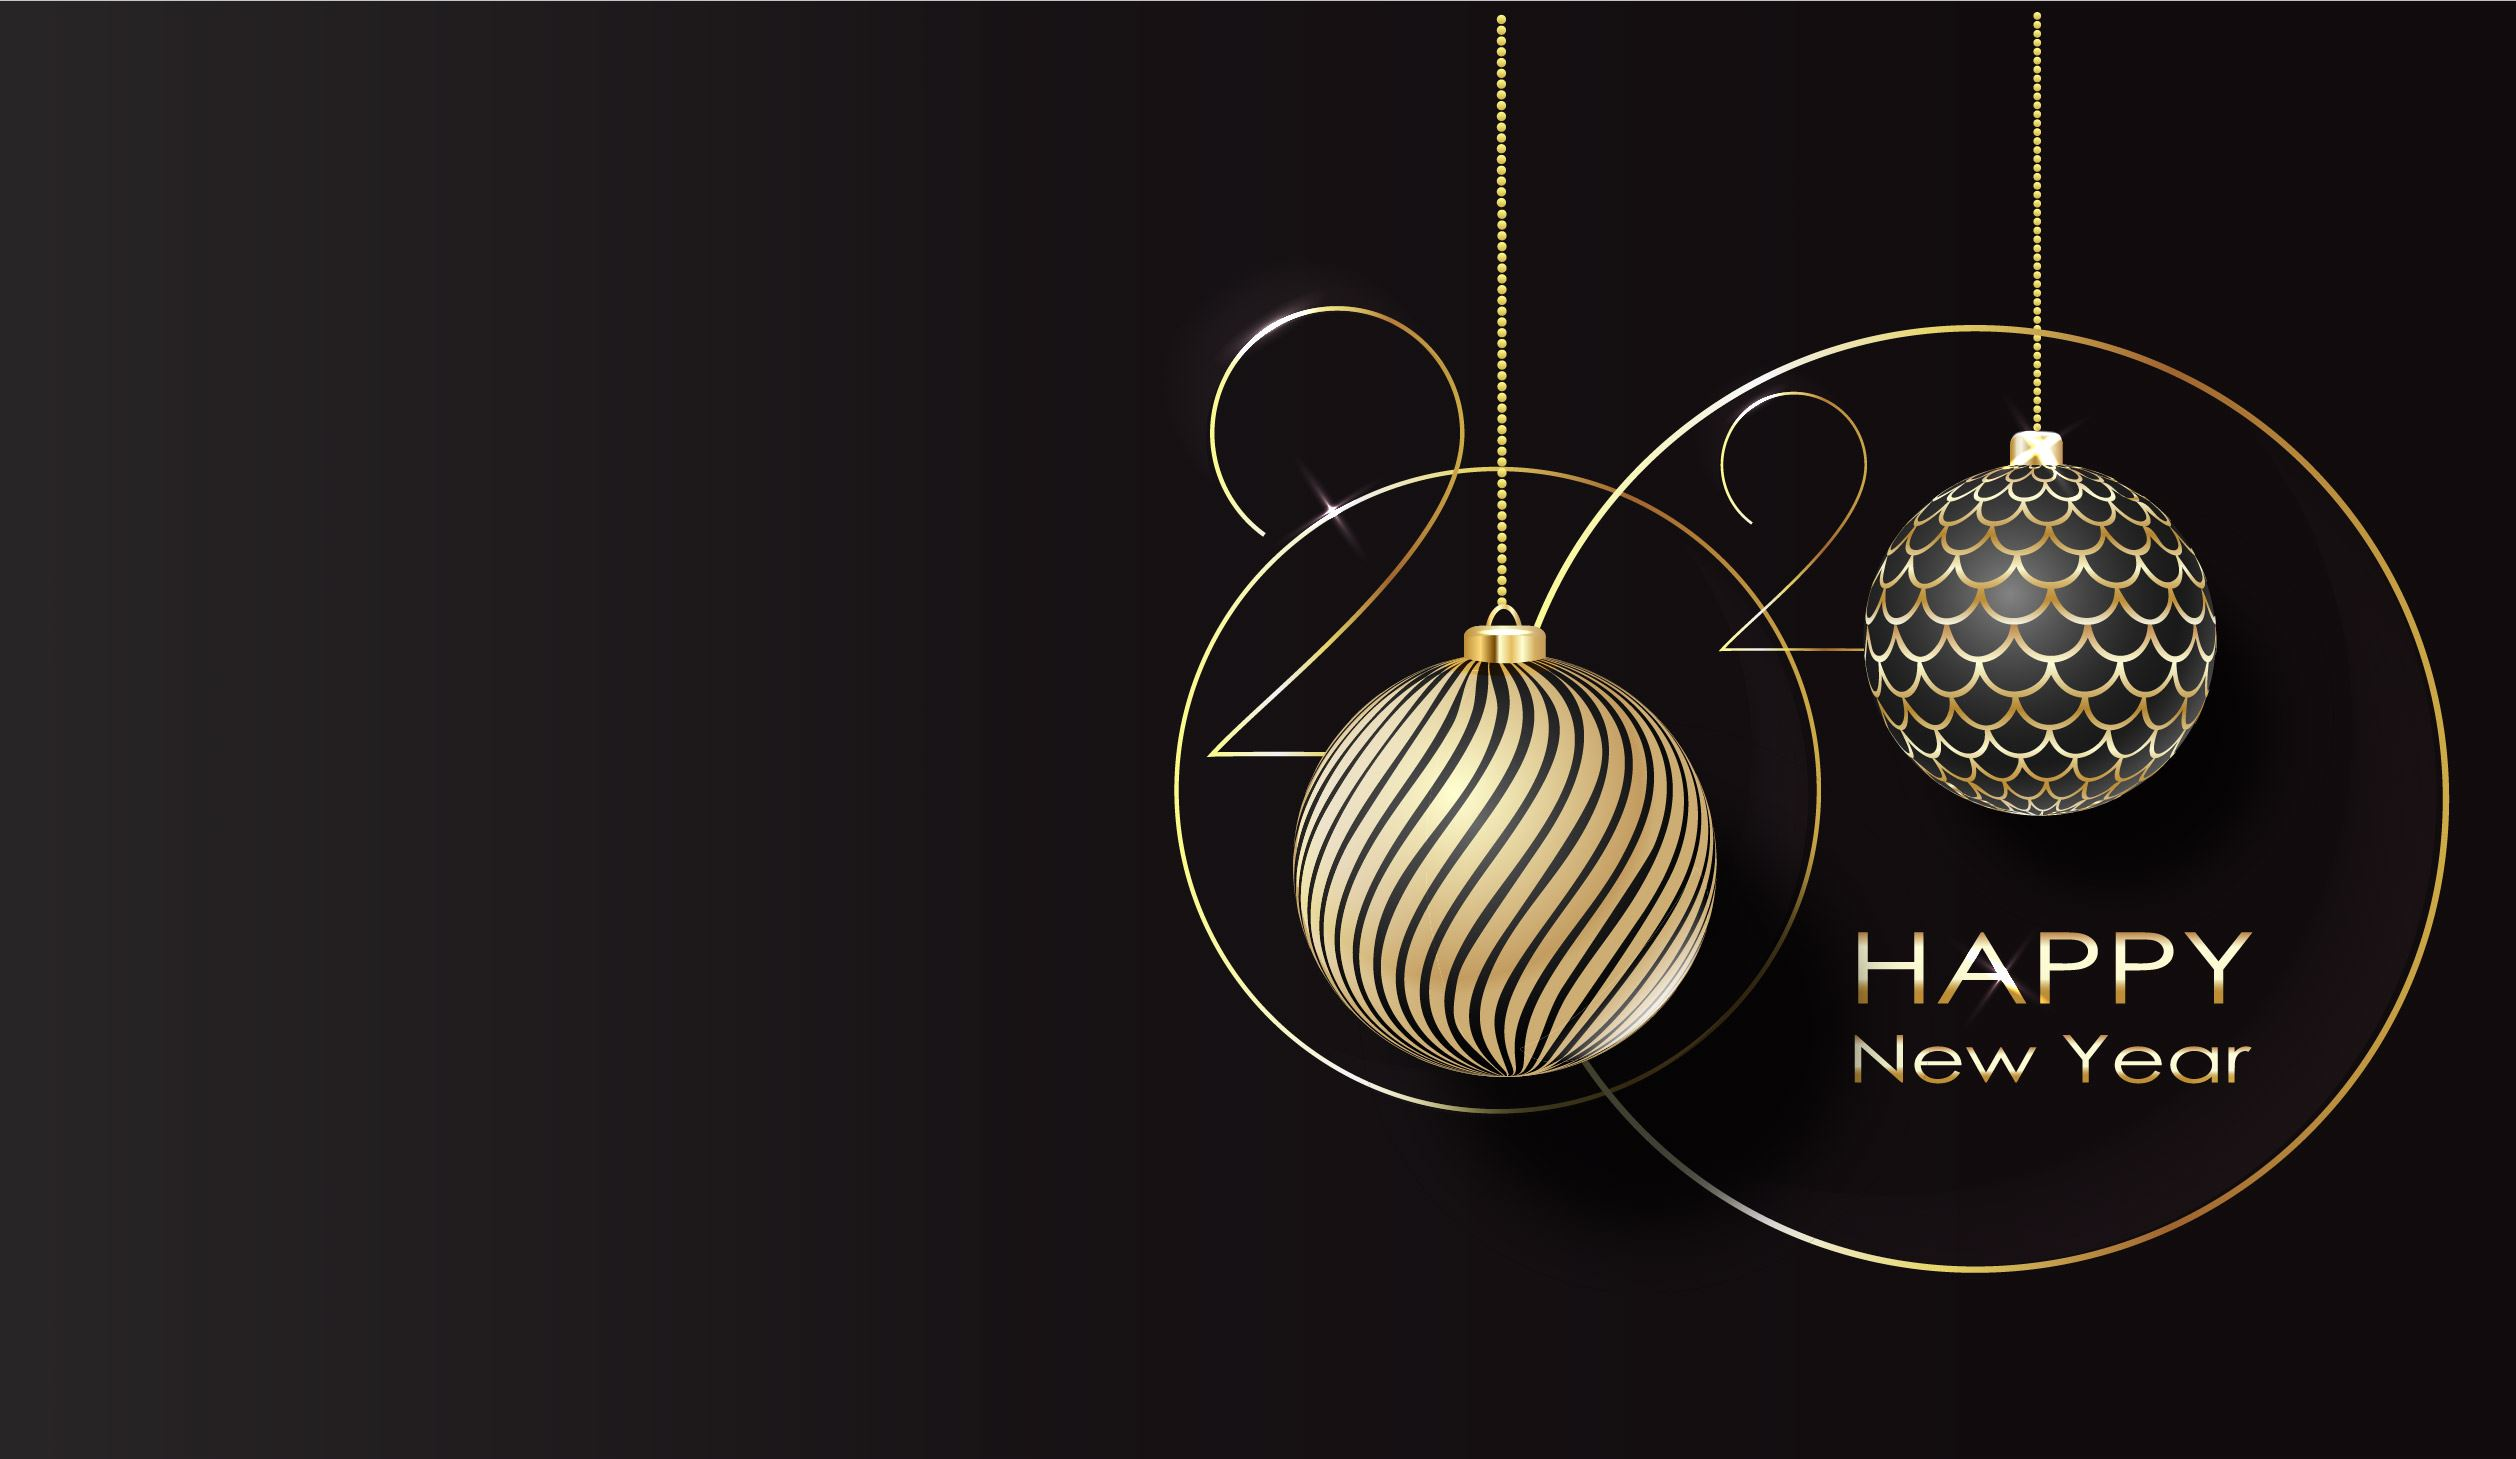 2020 Happy New Year with Black and Gold Ornaments